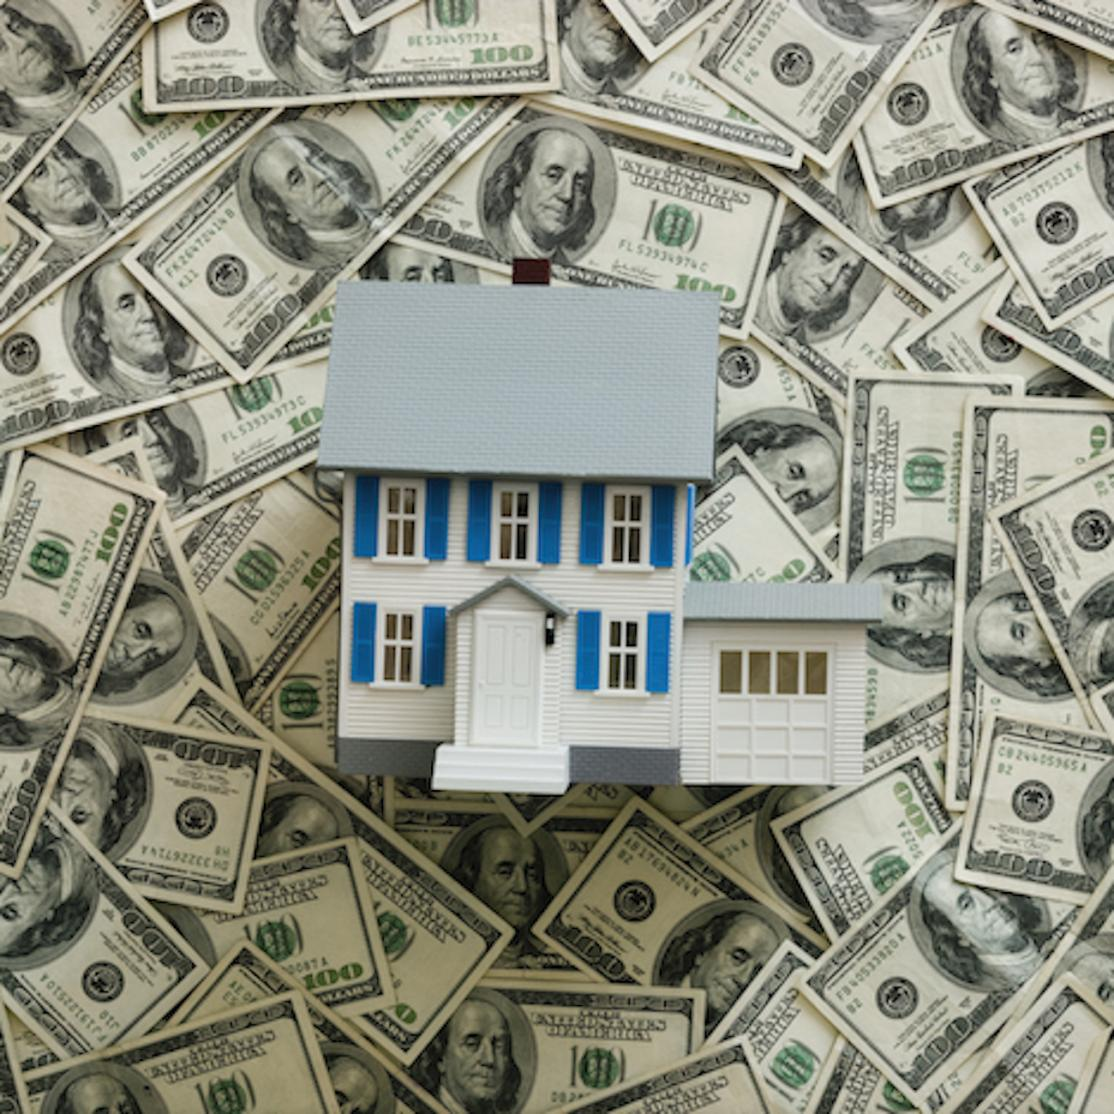 Homes selling for less than $100K